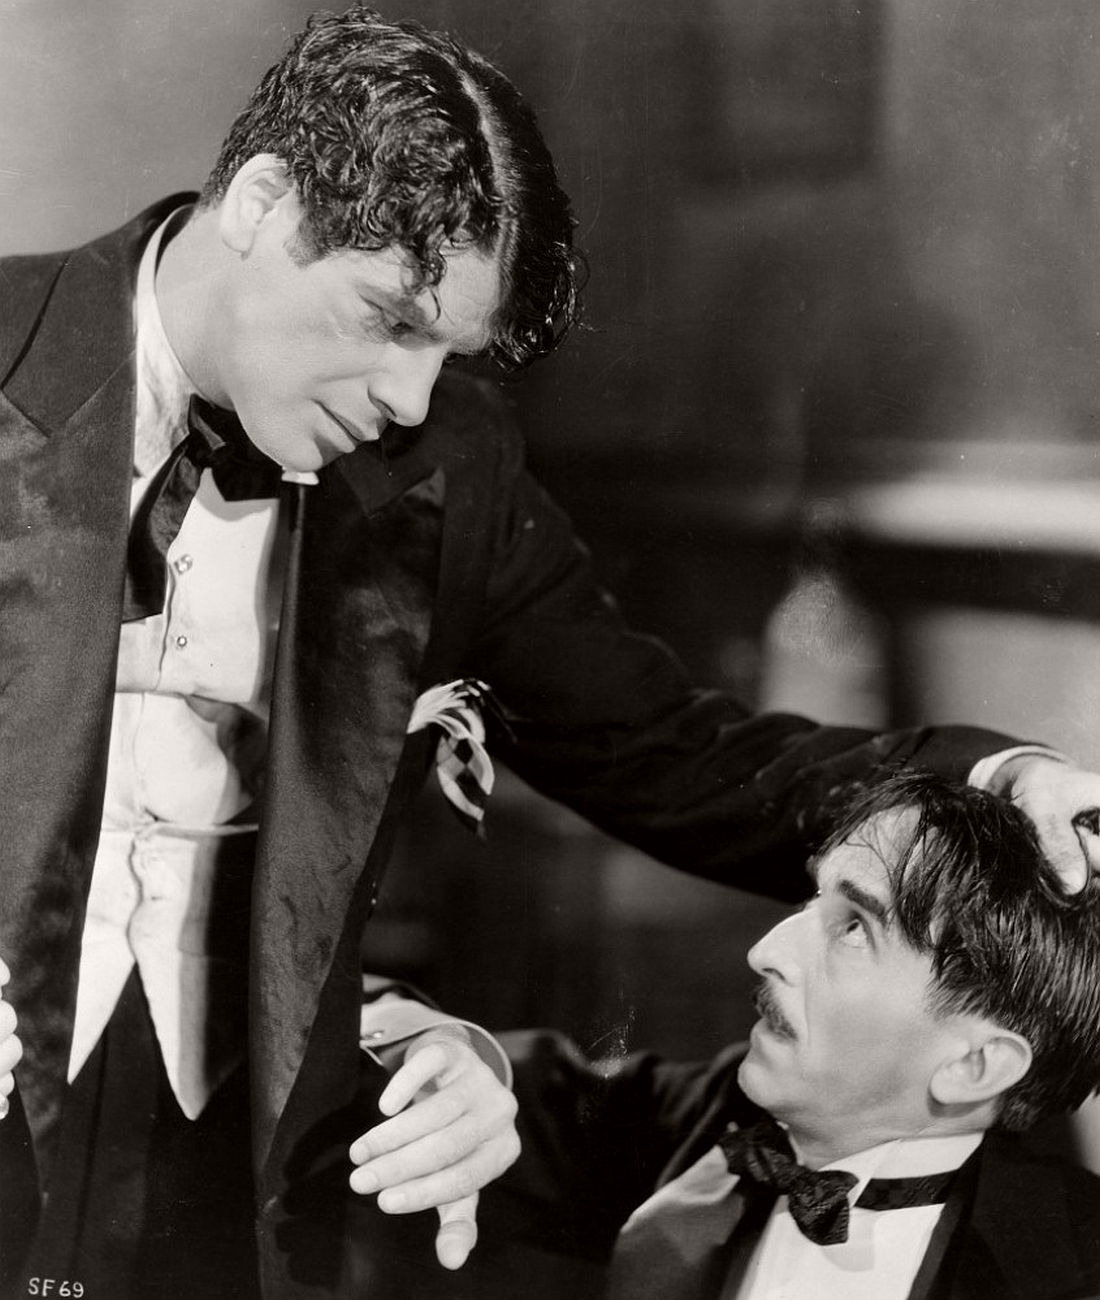 scarface-1932-behind-the-scenes-making-film-13